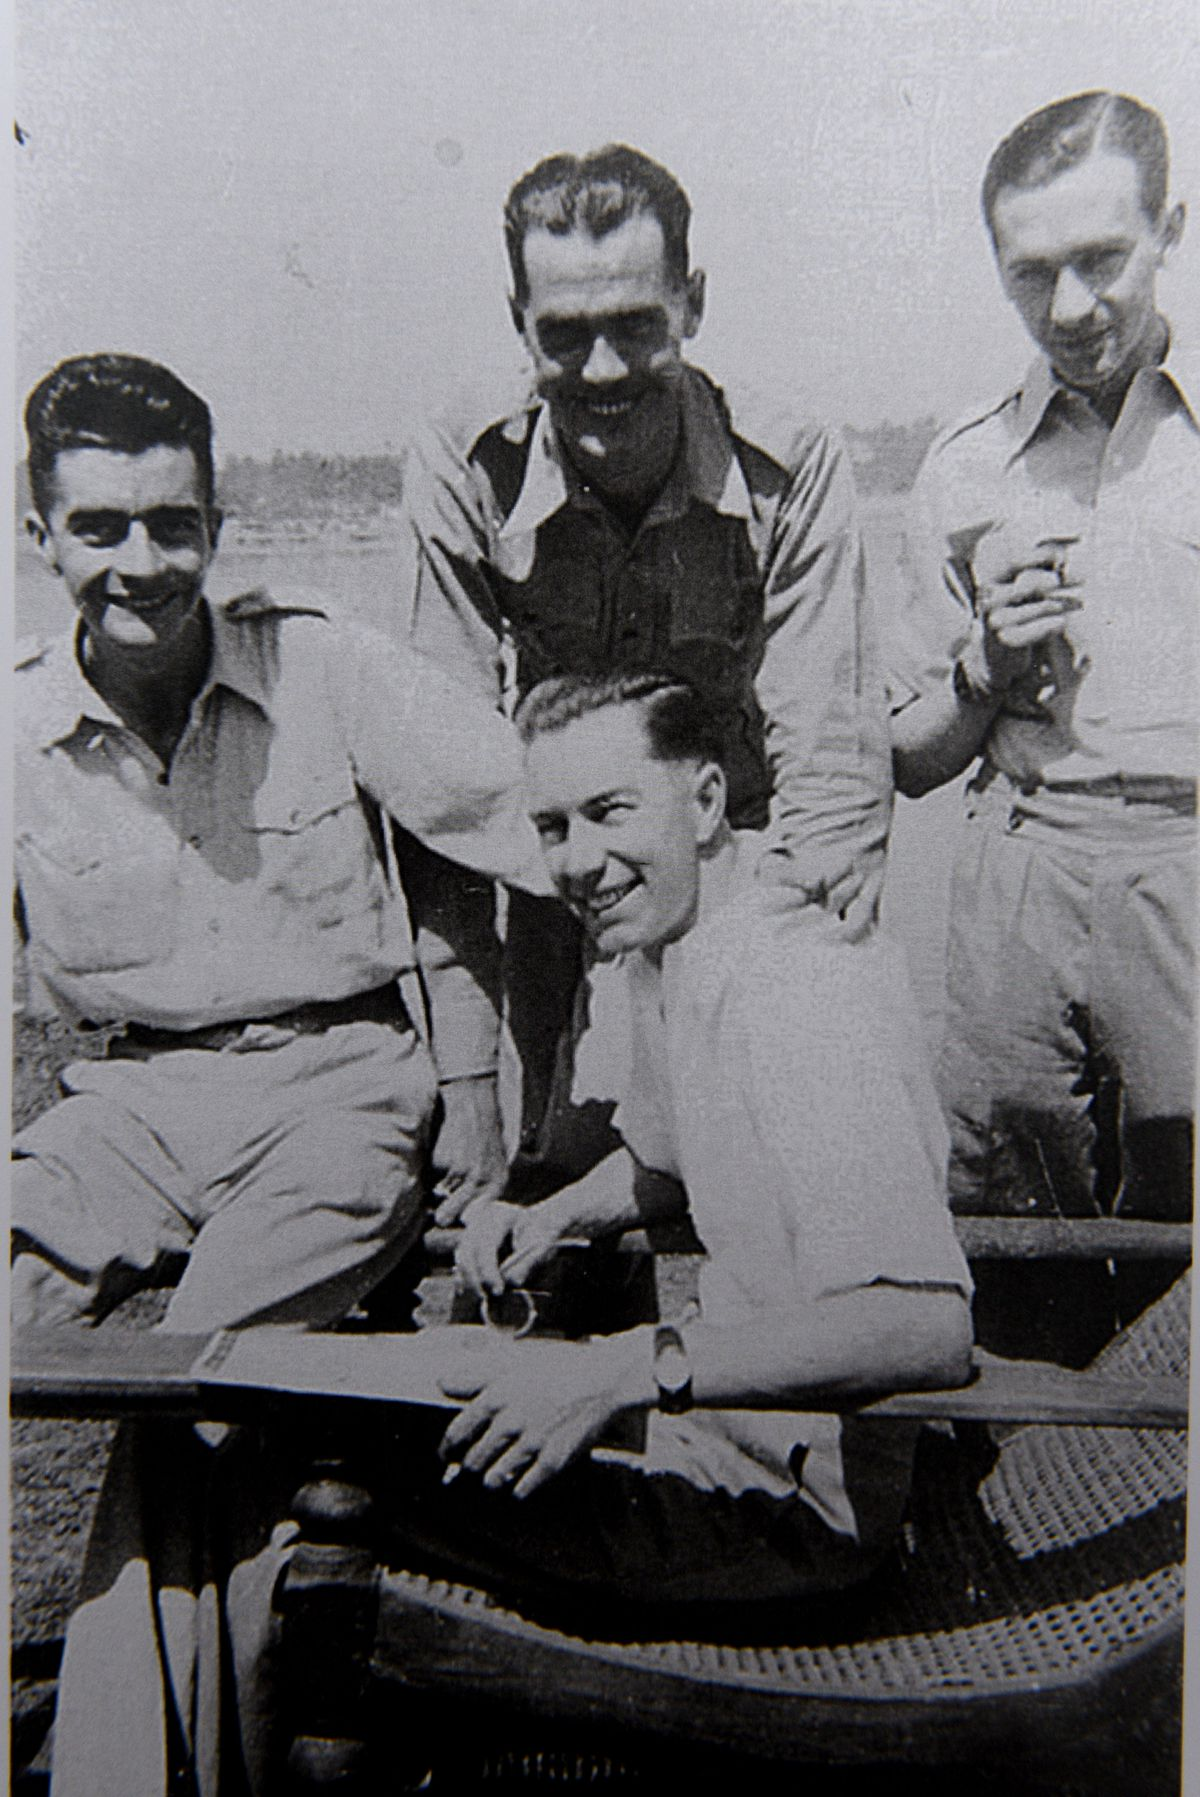 George, pictured on the left, in 1942